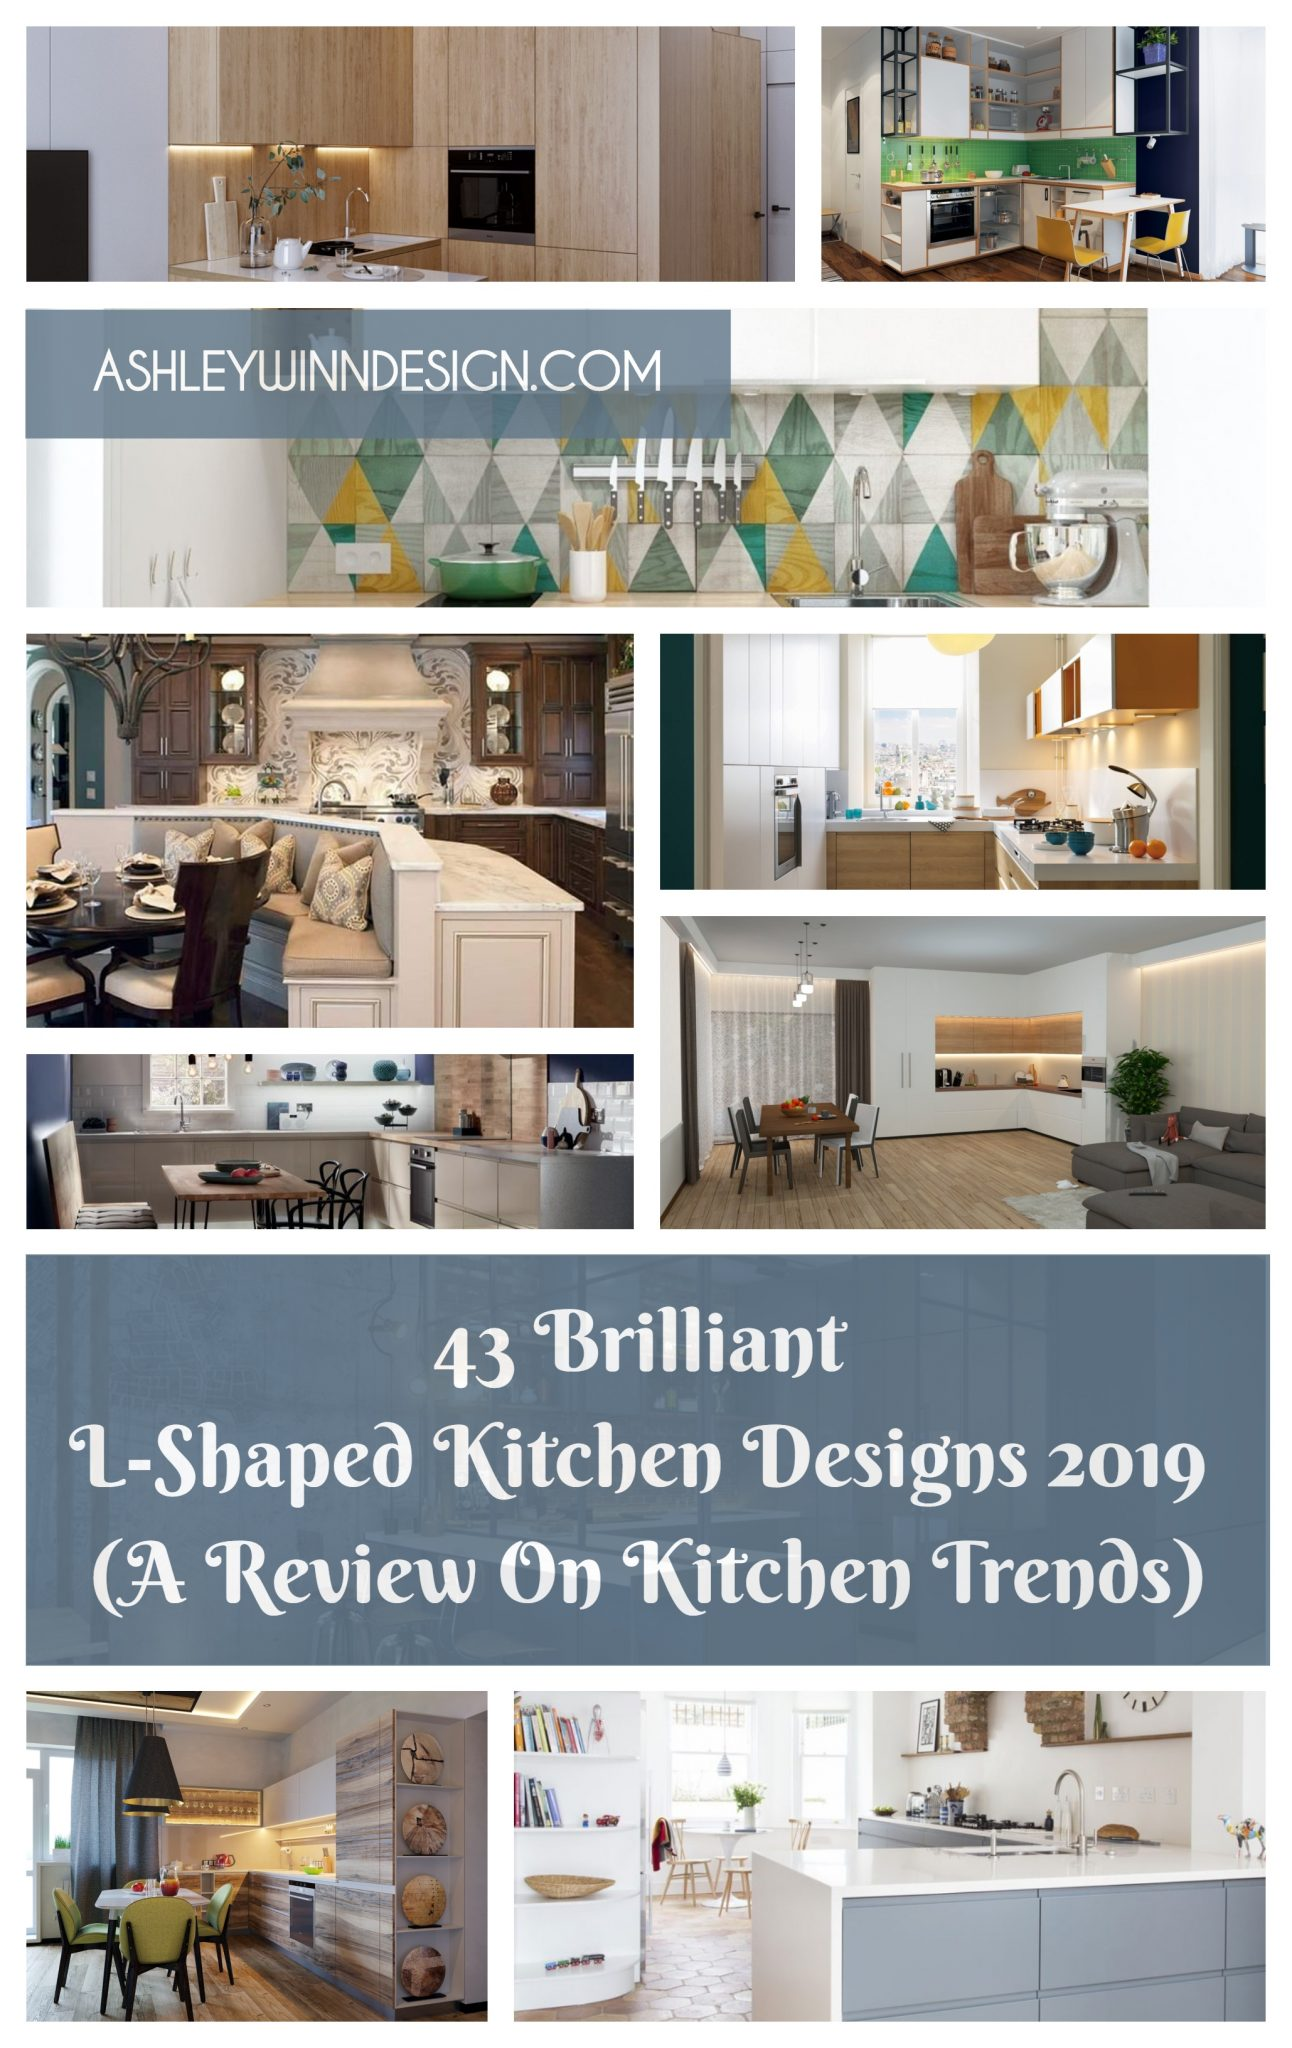 43 Brilliant L-Shaped Kitchen Designs 2020 [A Review On